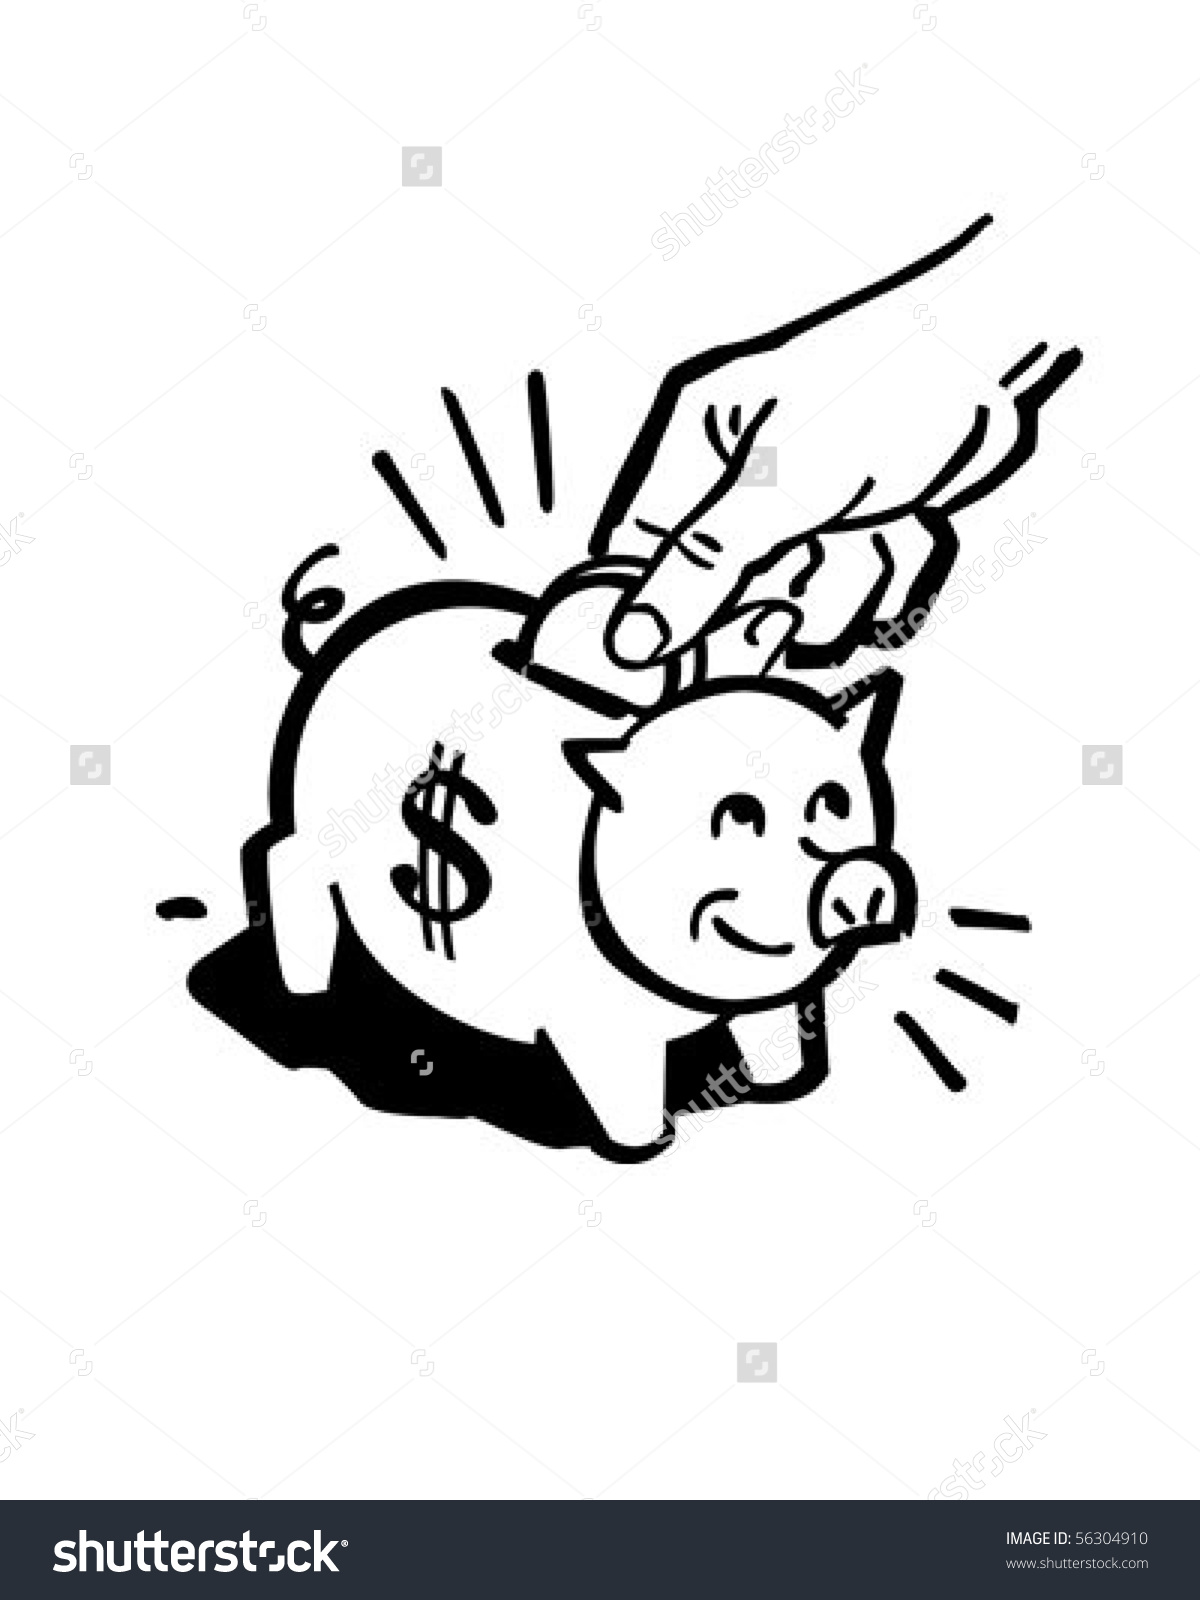 Clipart of a piggy bank. Retro clip art stock